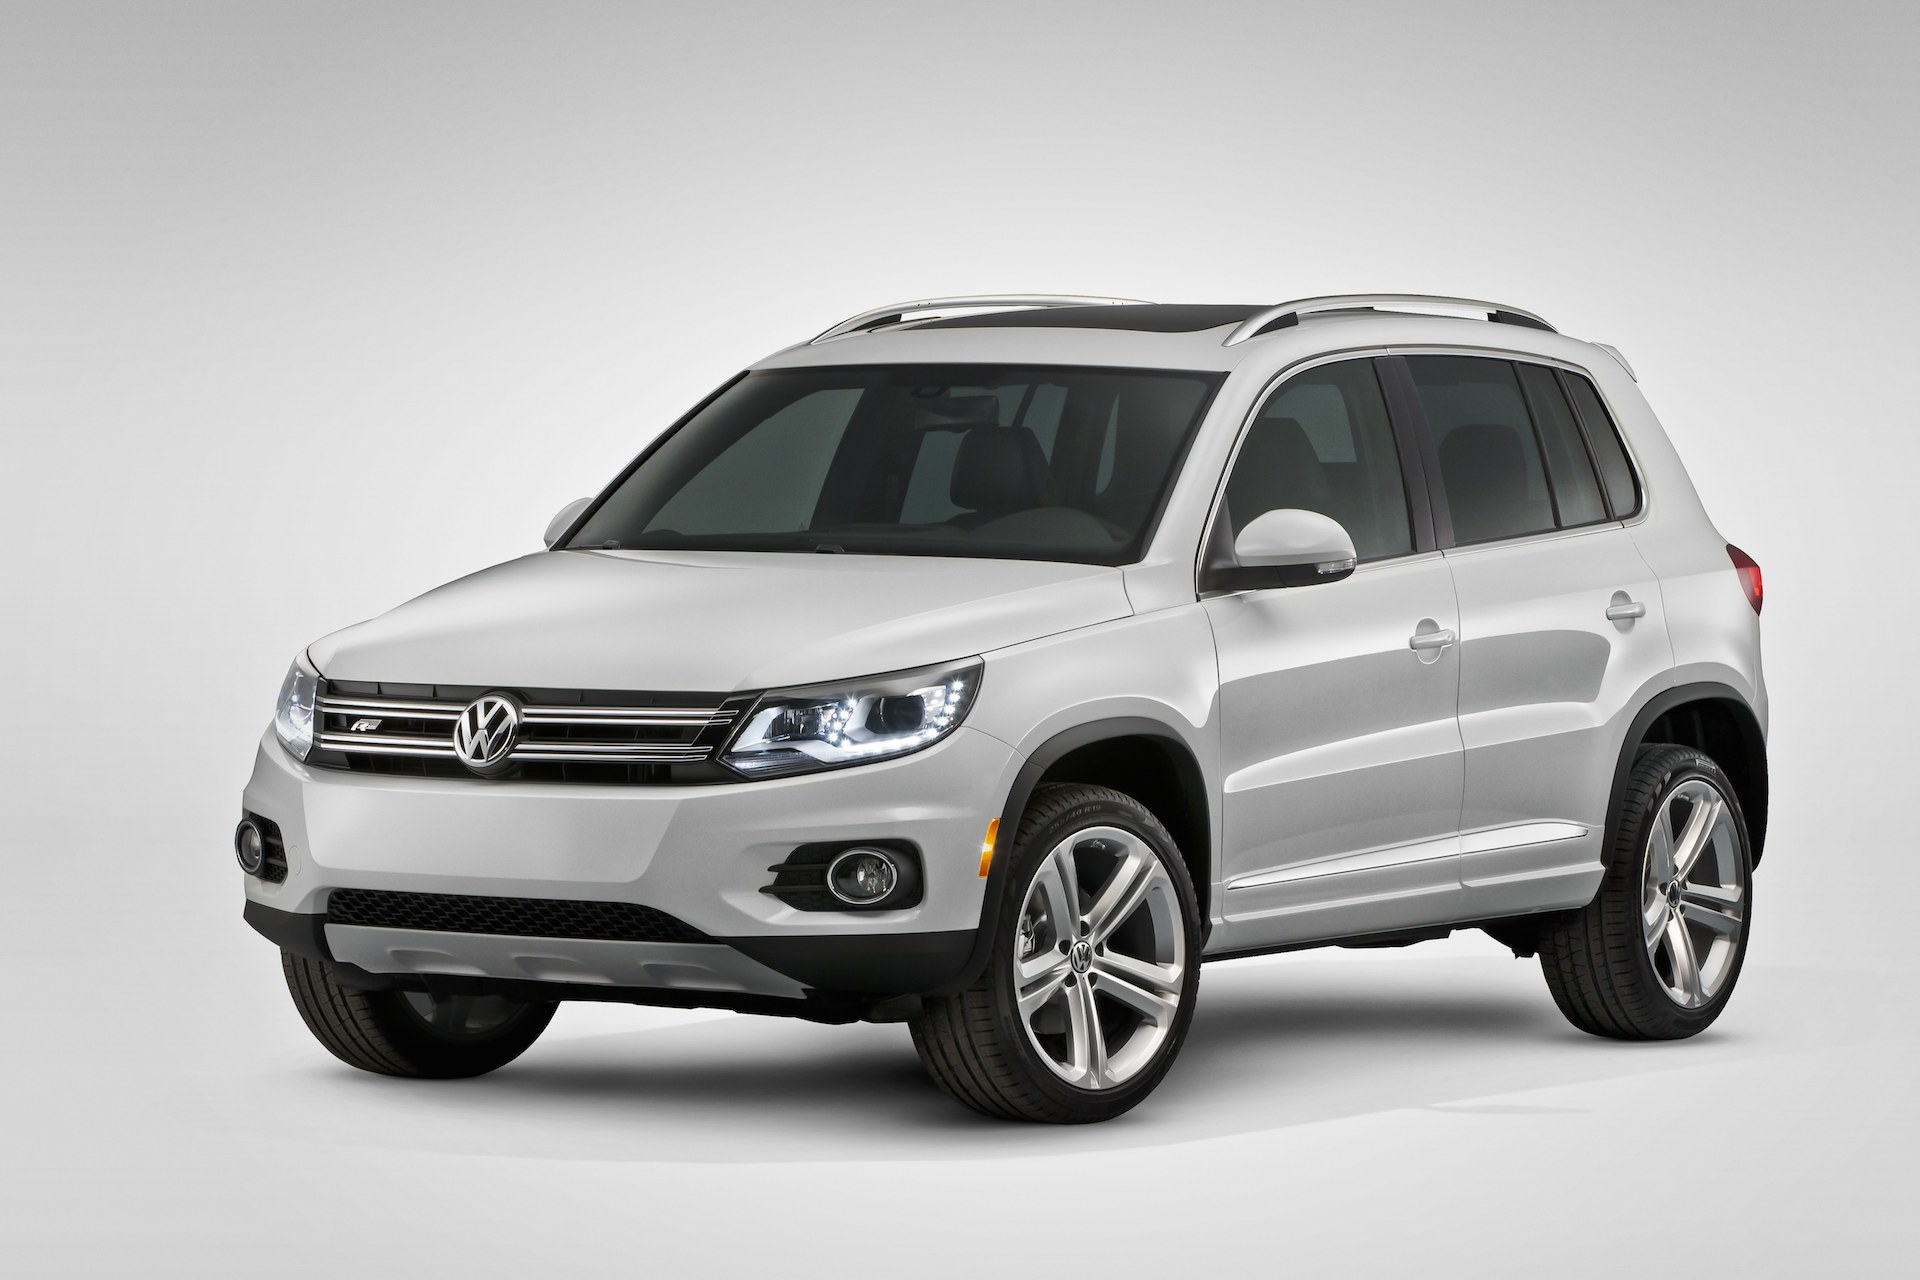 2016 volkswagen tiguan vw review ratings specs prices and photos the car connection. Black Bedroom Furniture Sets. Home Design Ideas